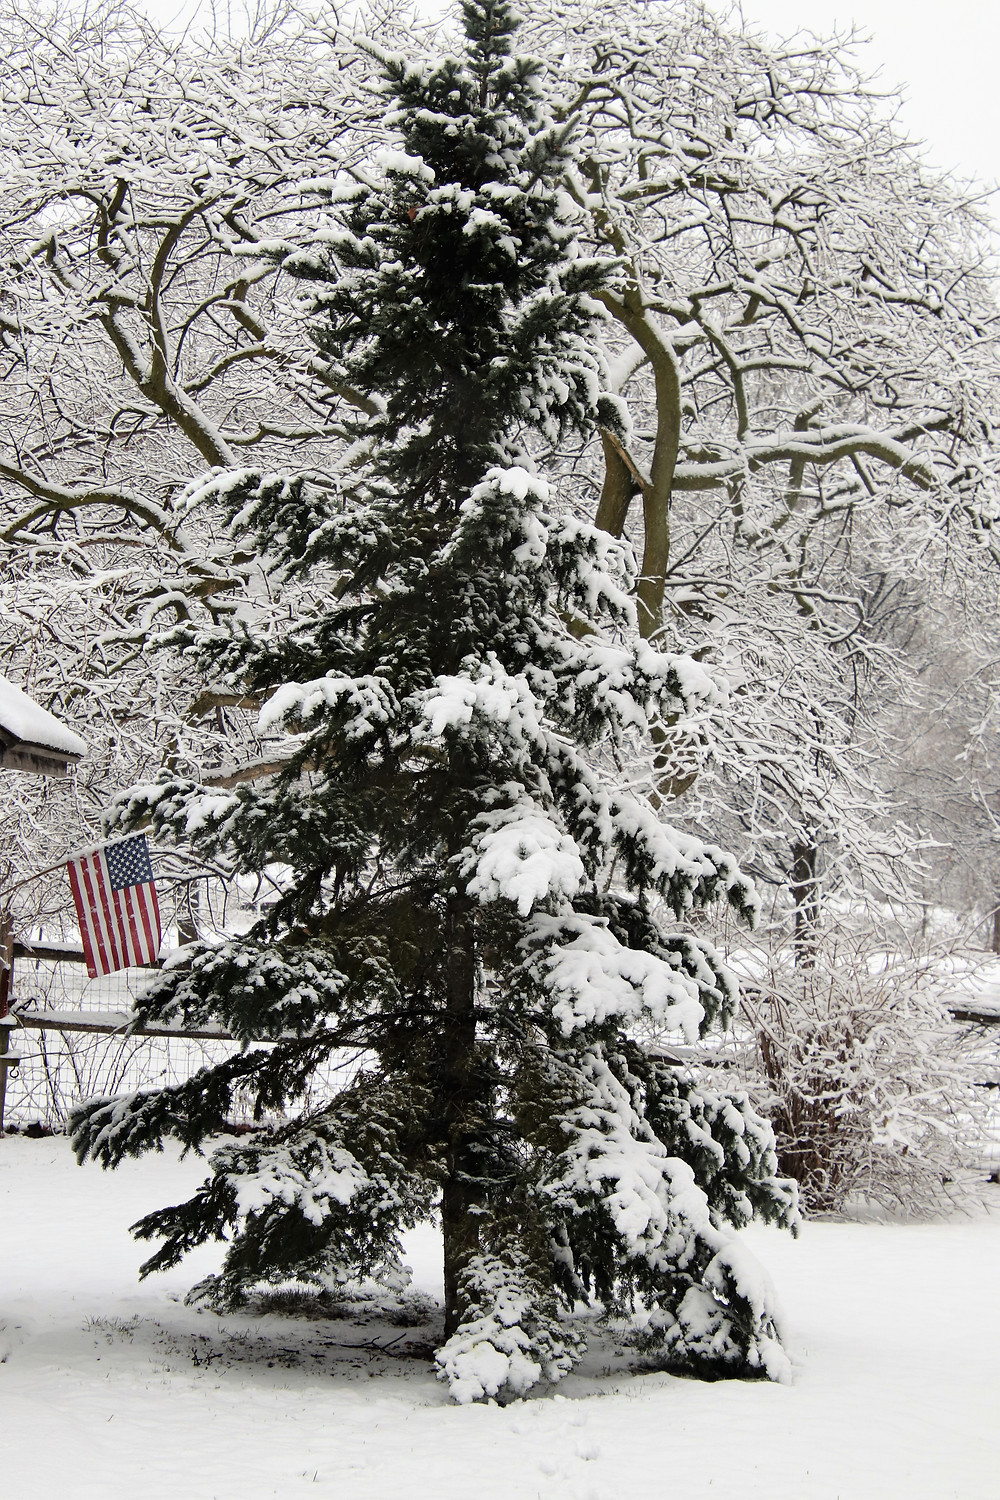 Old Glory Next to a Snowy Pine